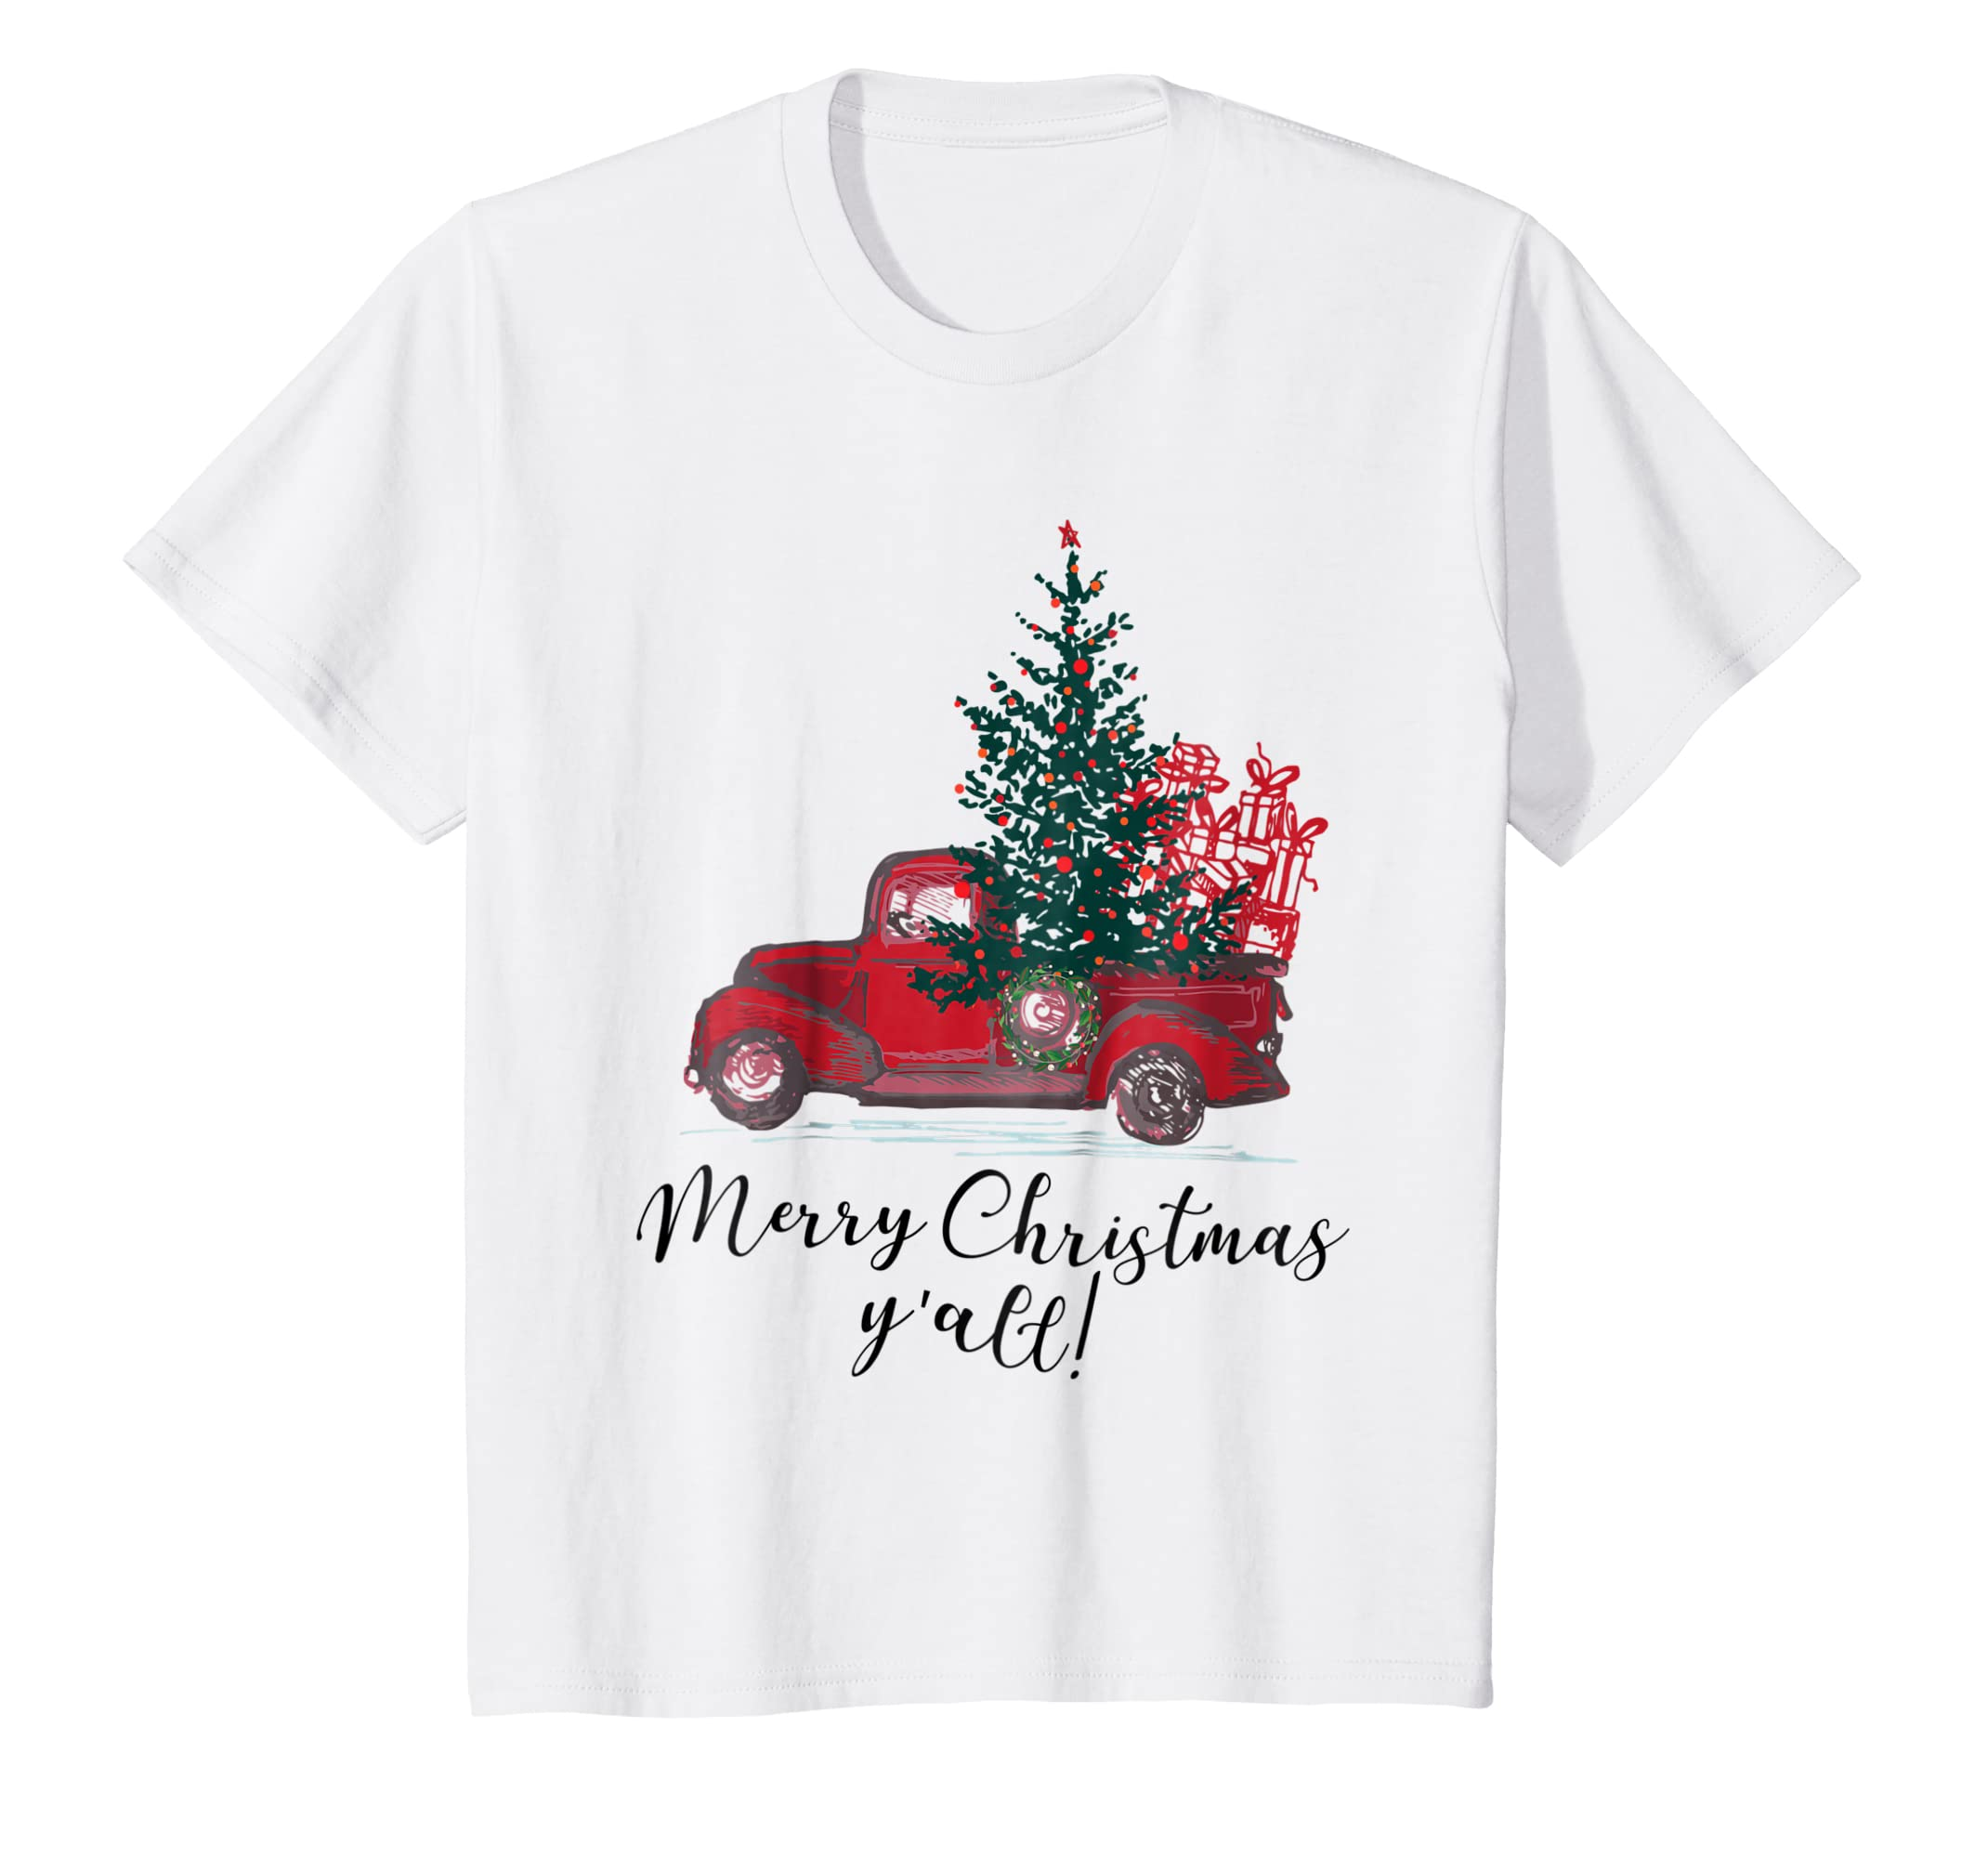 84086e3f Amazon.com: Red Truck Merry Christmas Y'all Tshirt Merry Xmas Gifts:  Clothing